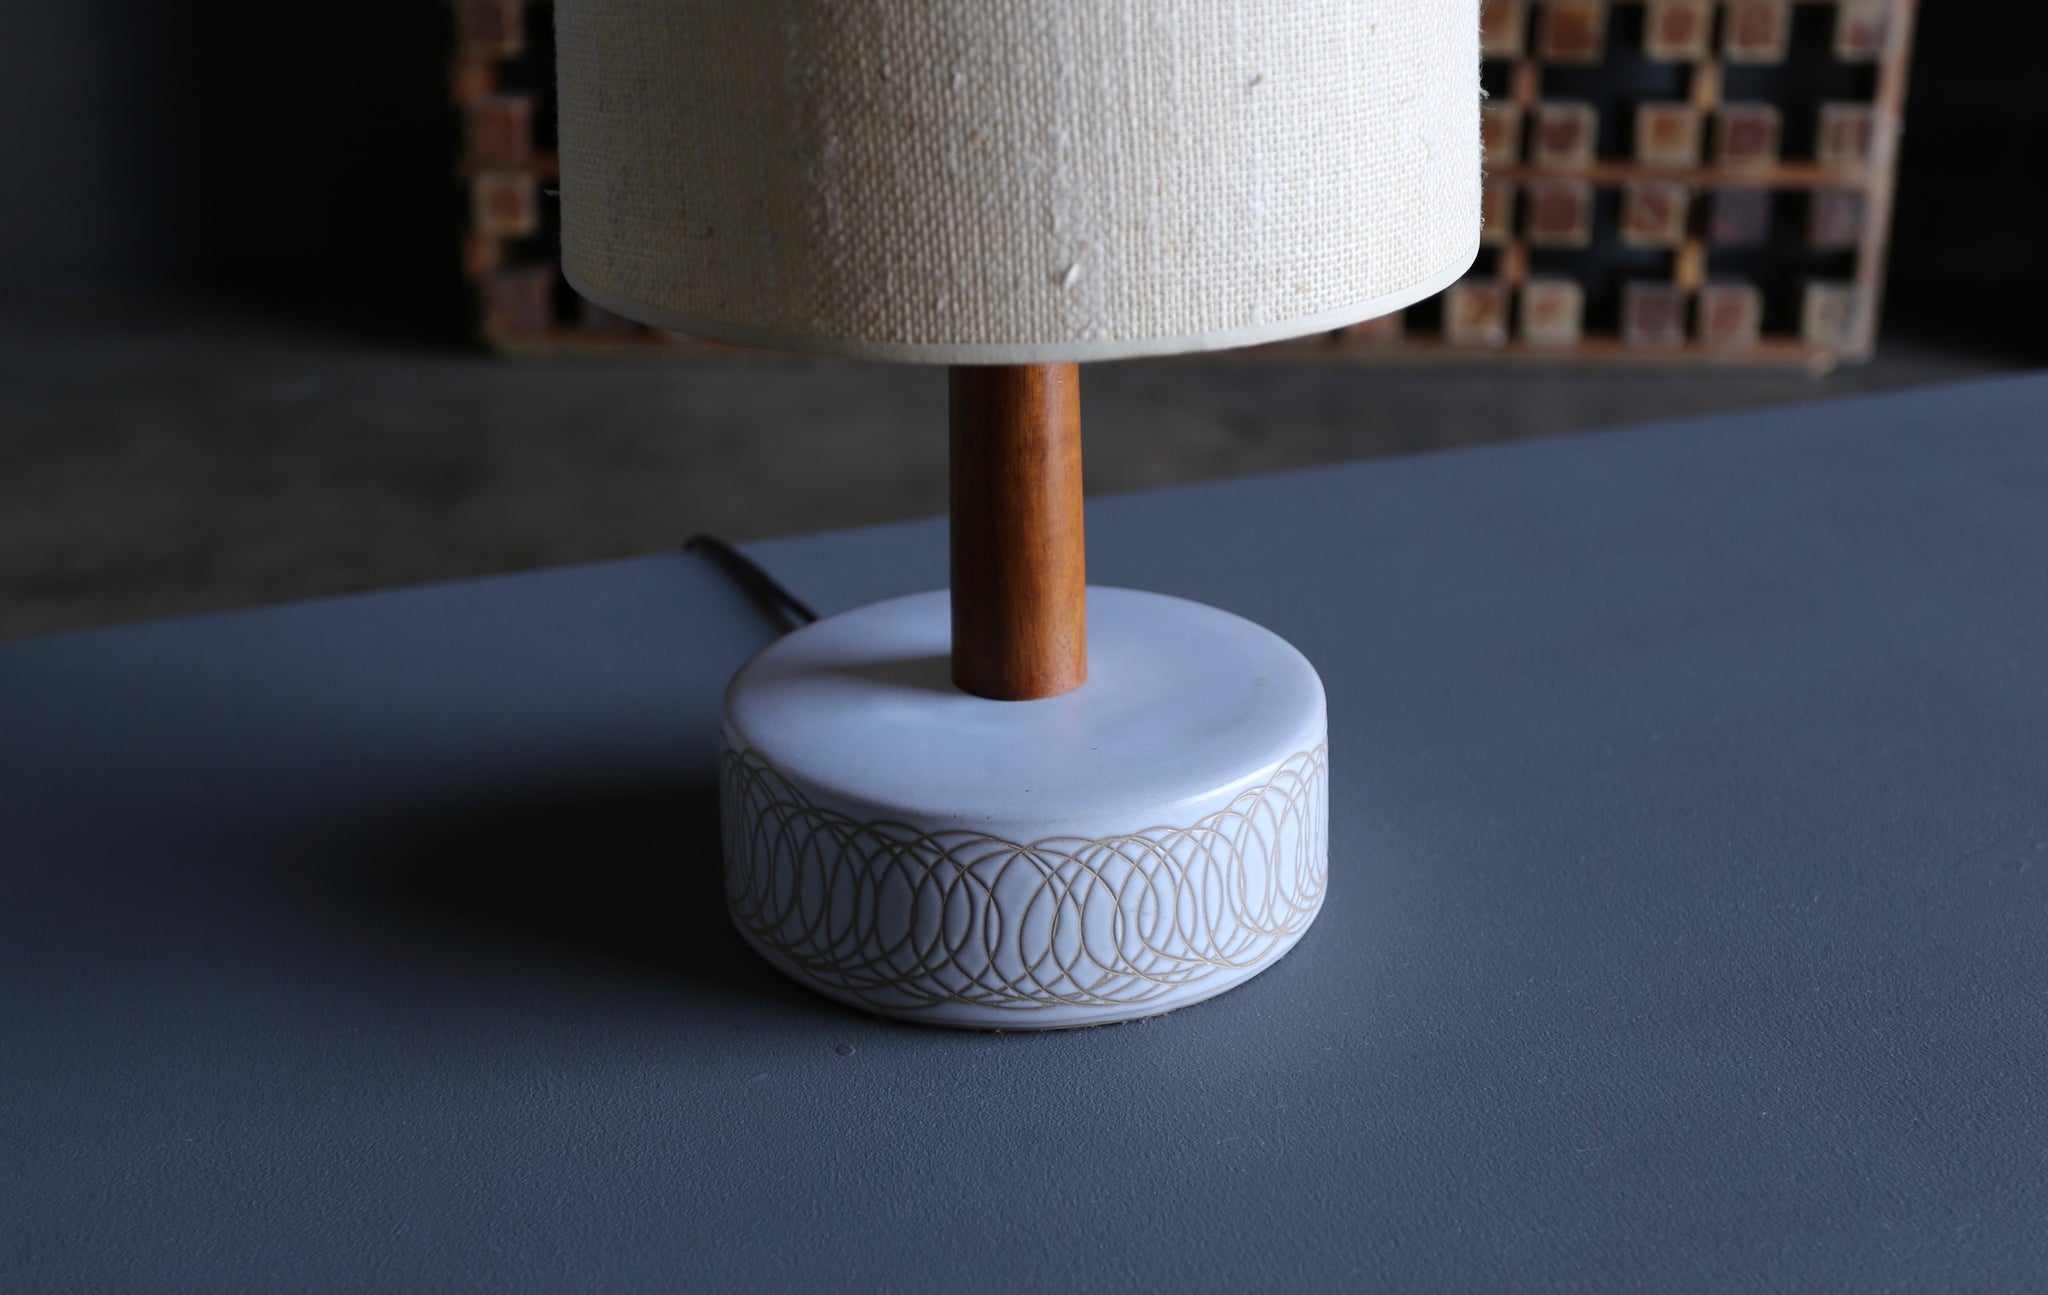 = SOLD = Jane and Gordon Martz Ceramic Table Lamp For Marshall Studios circa 1965